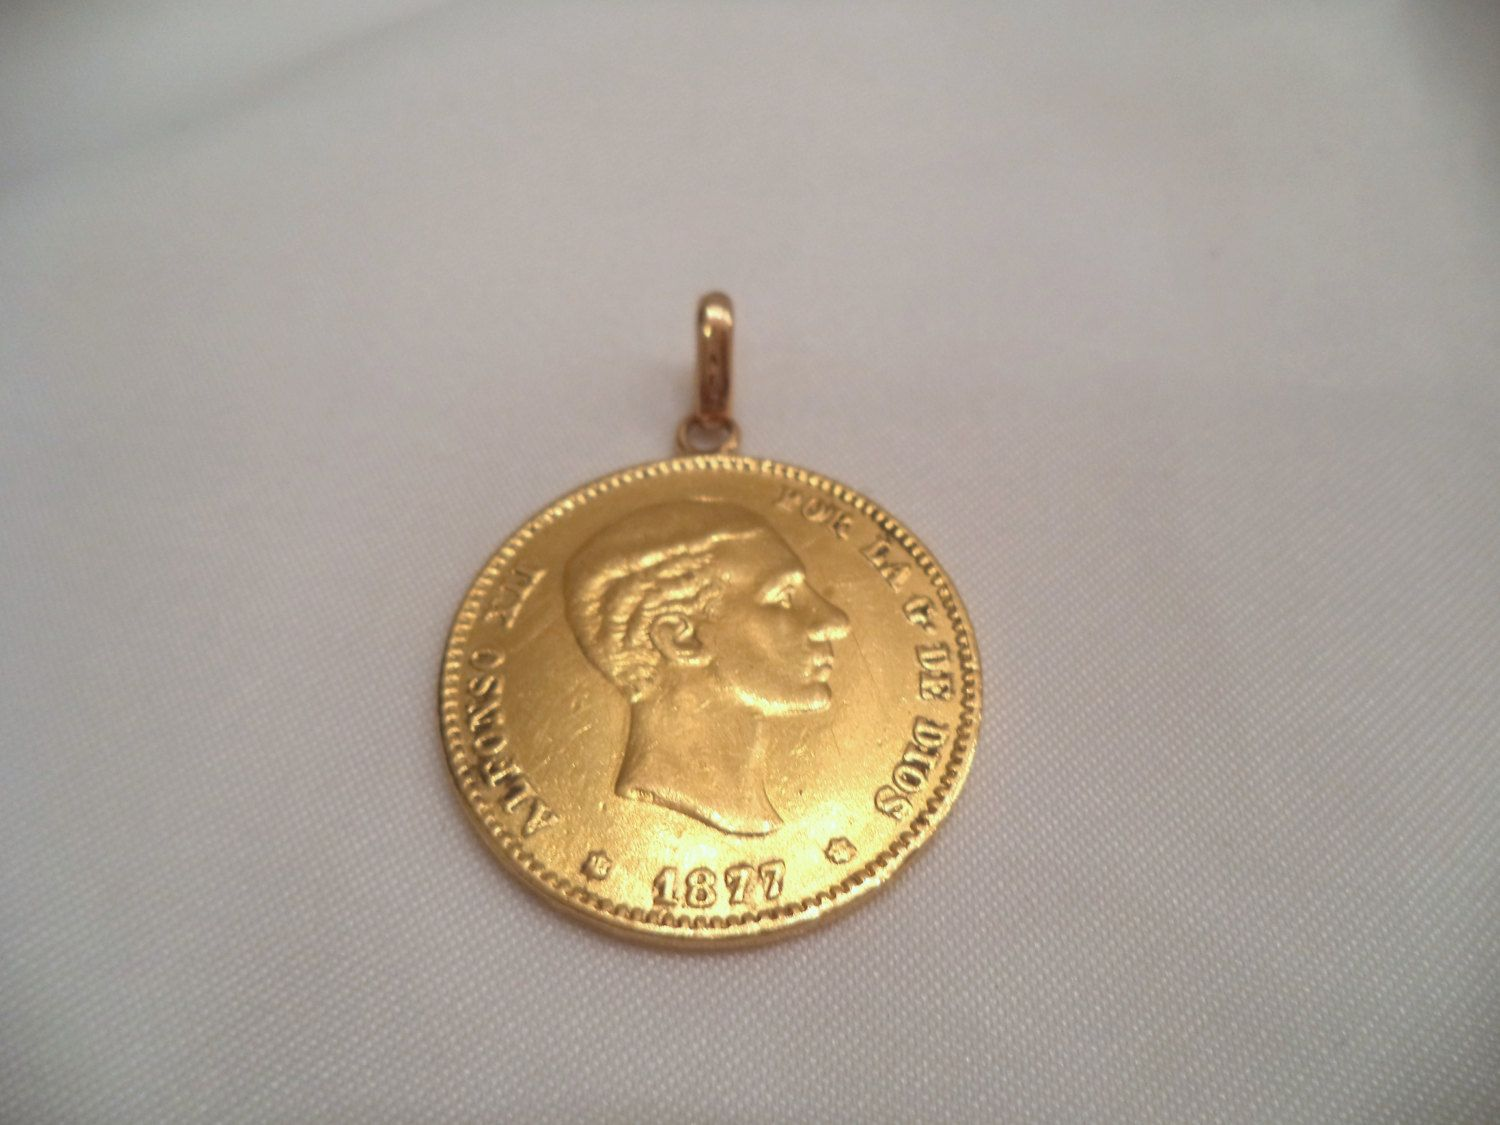 21 Karat Gold Pendant Medallion for Necklace SPAIN 1877 ALFONSO XII